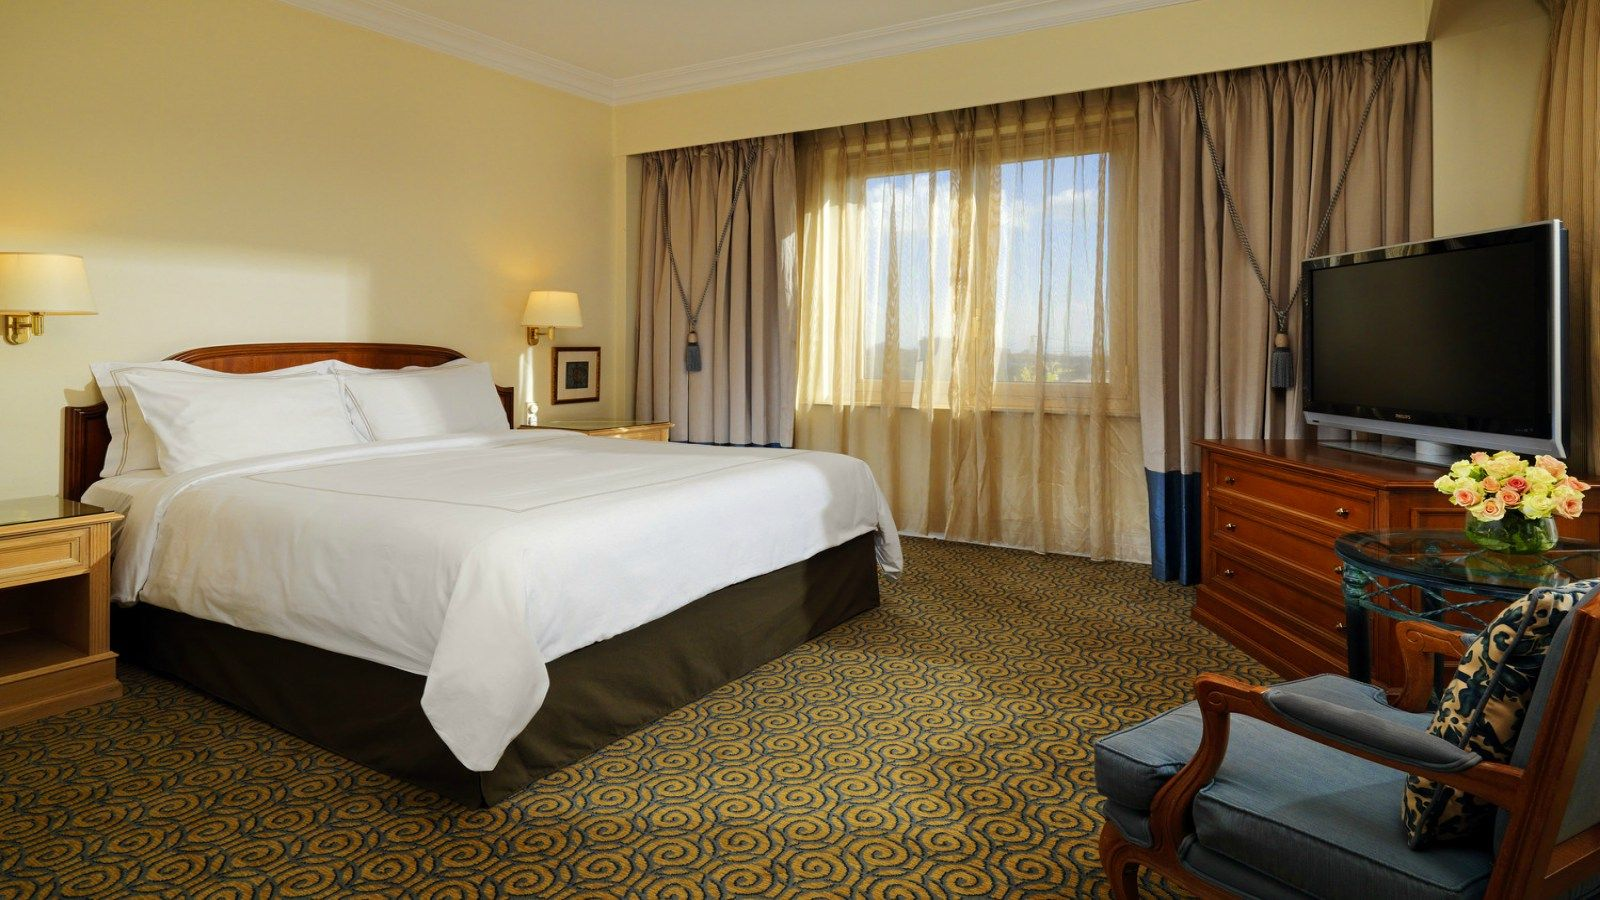 Classic Suite Room interior with Flat Screen TV in front of bed